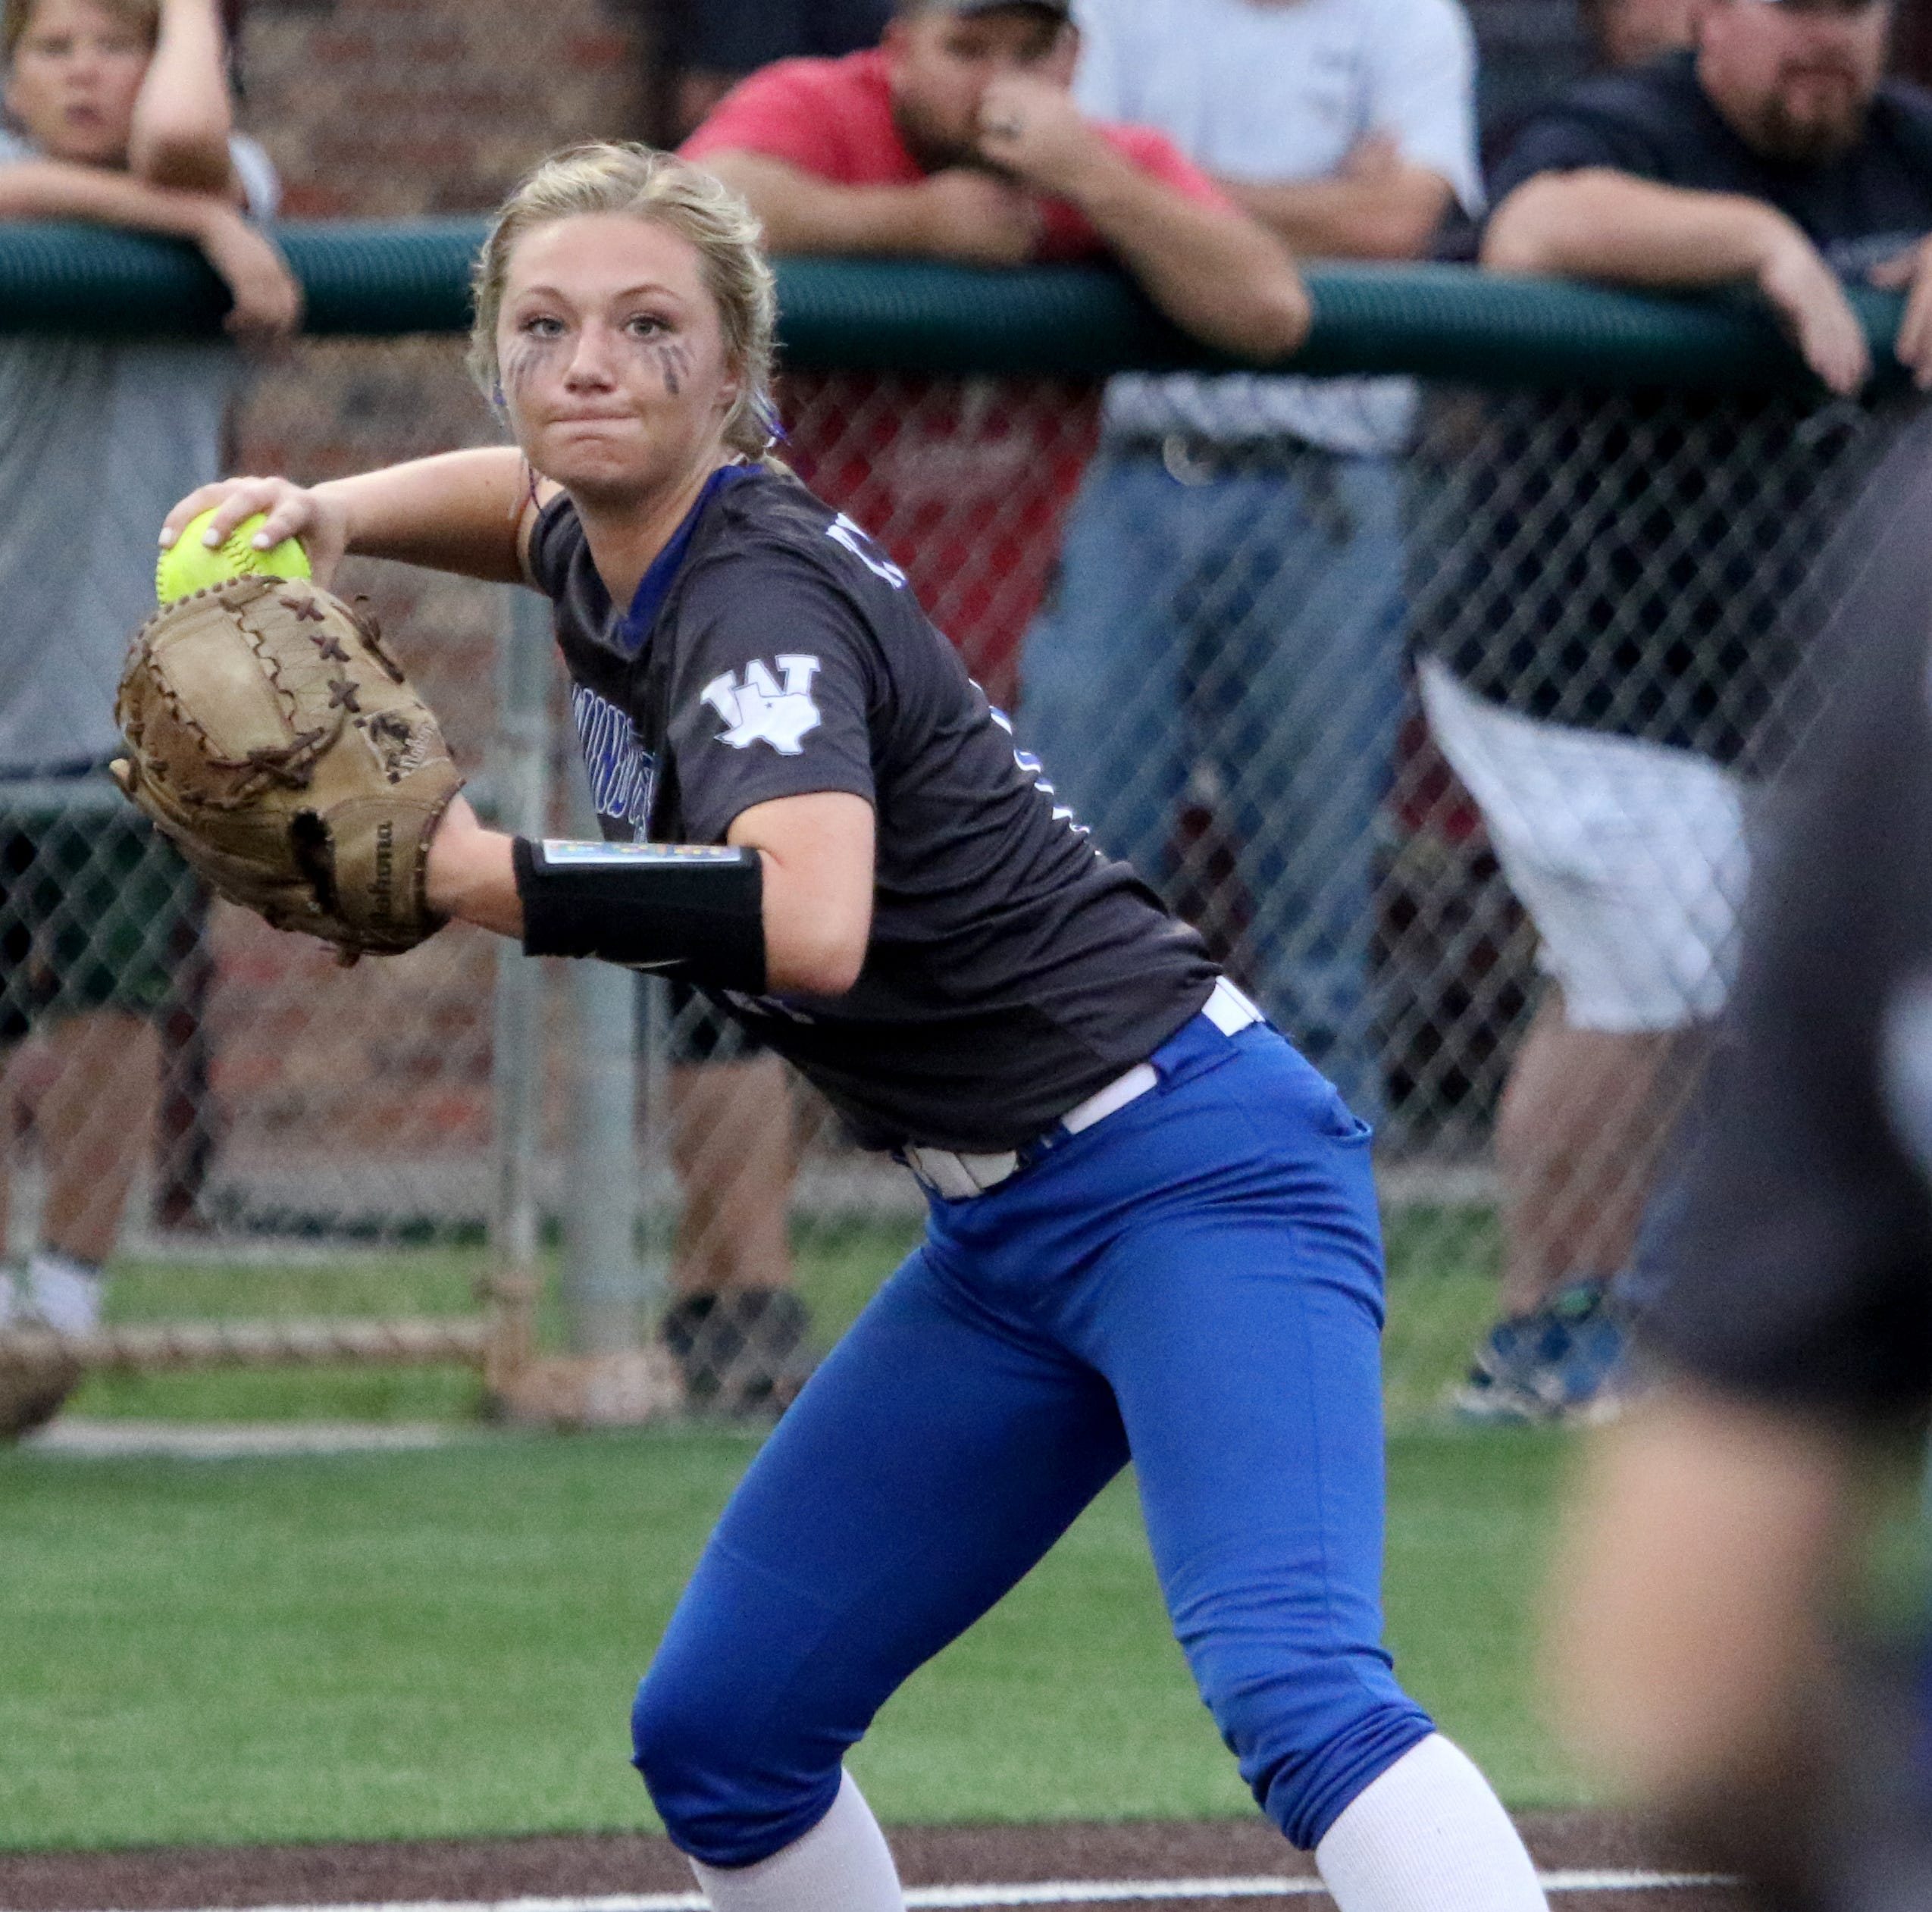 2019 UIL State Softball Tournament schedule, ticket, broadcast information